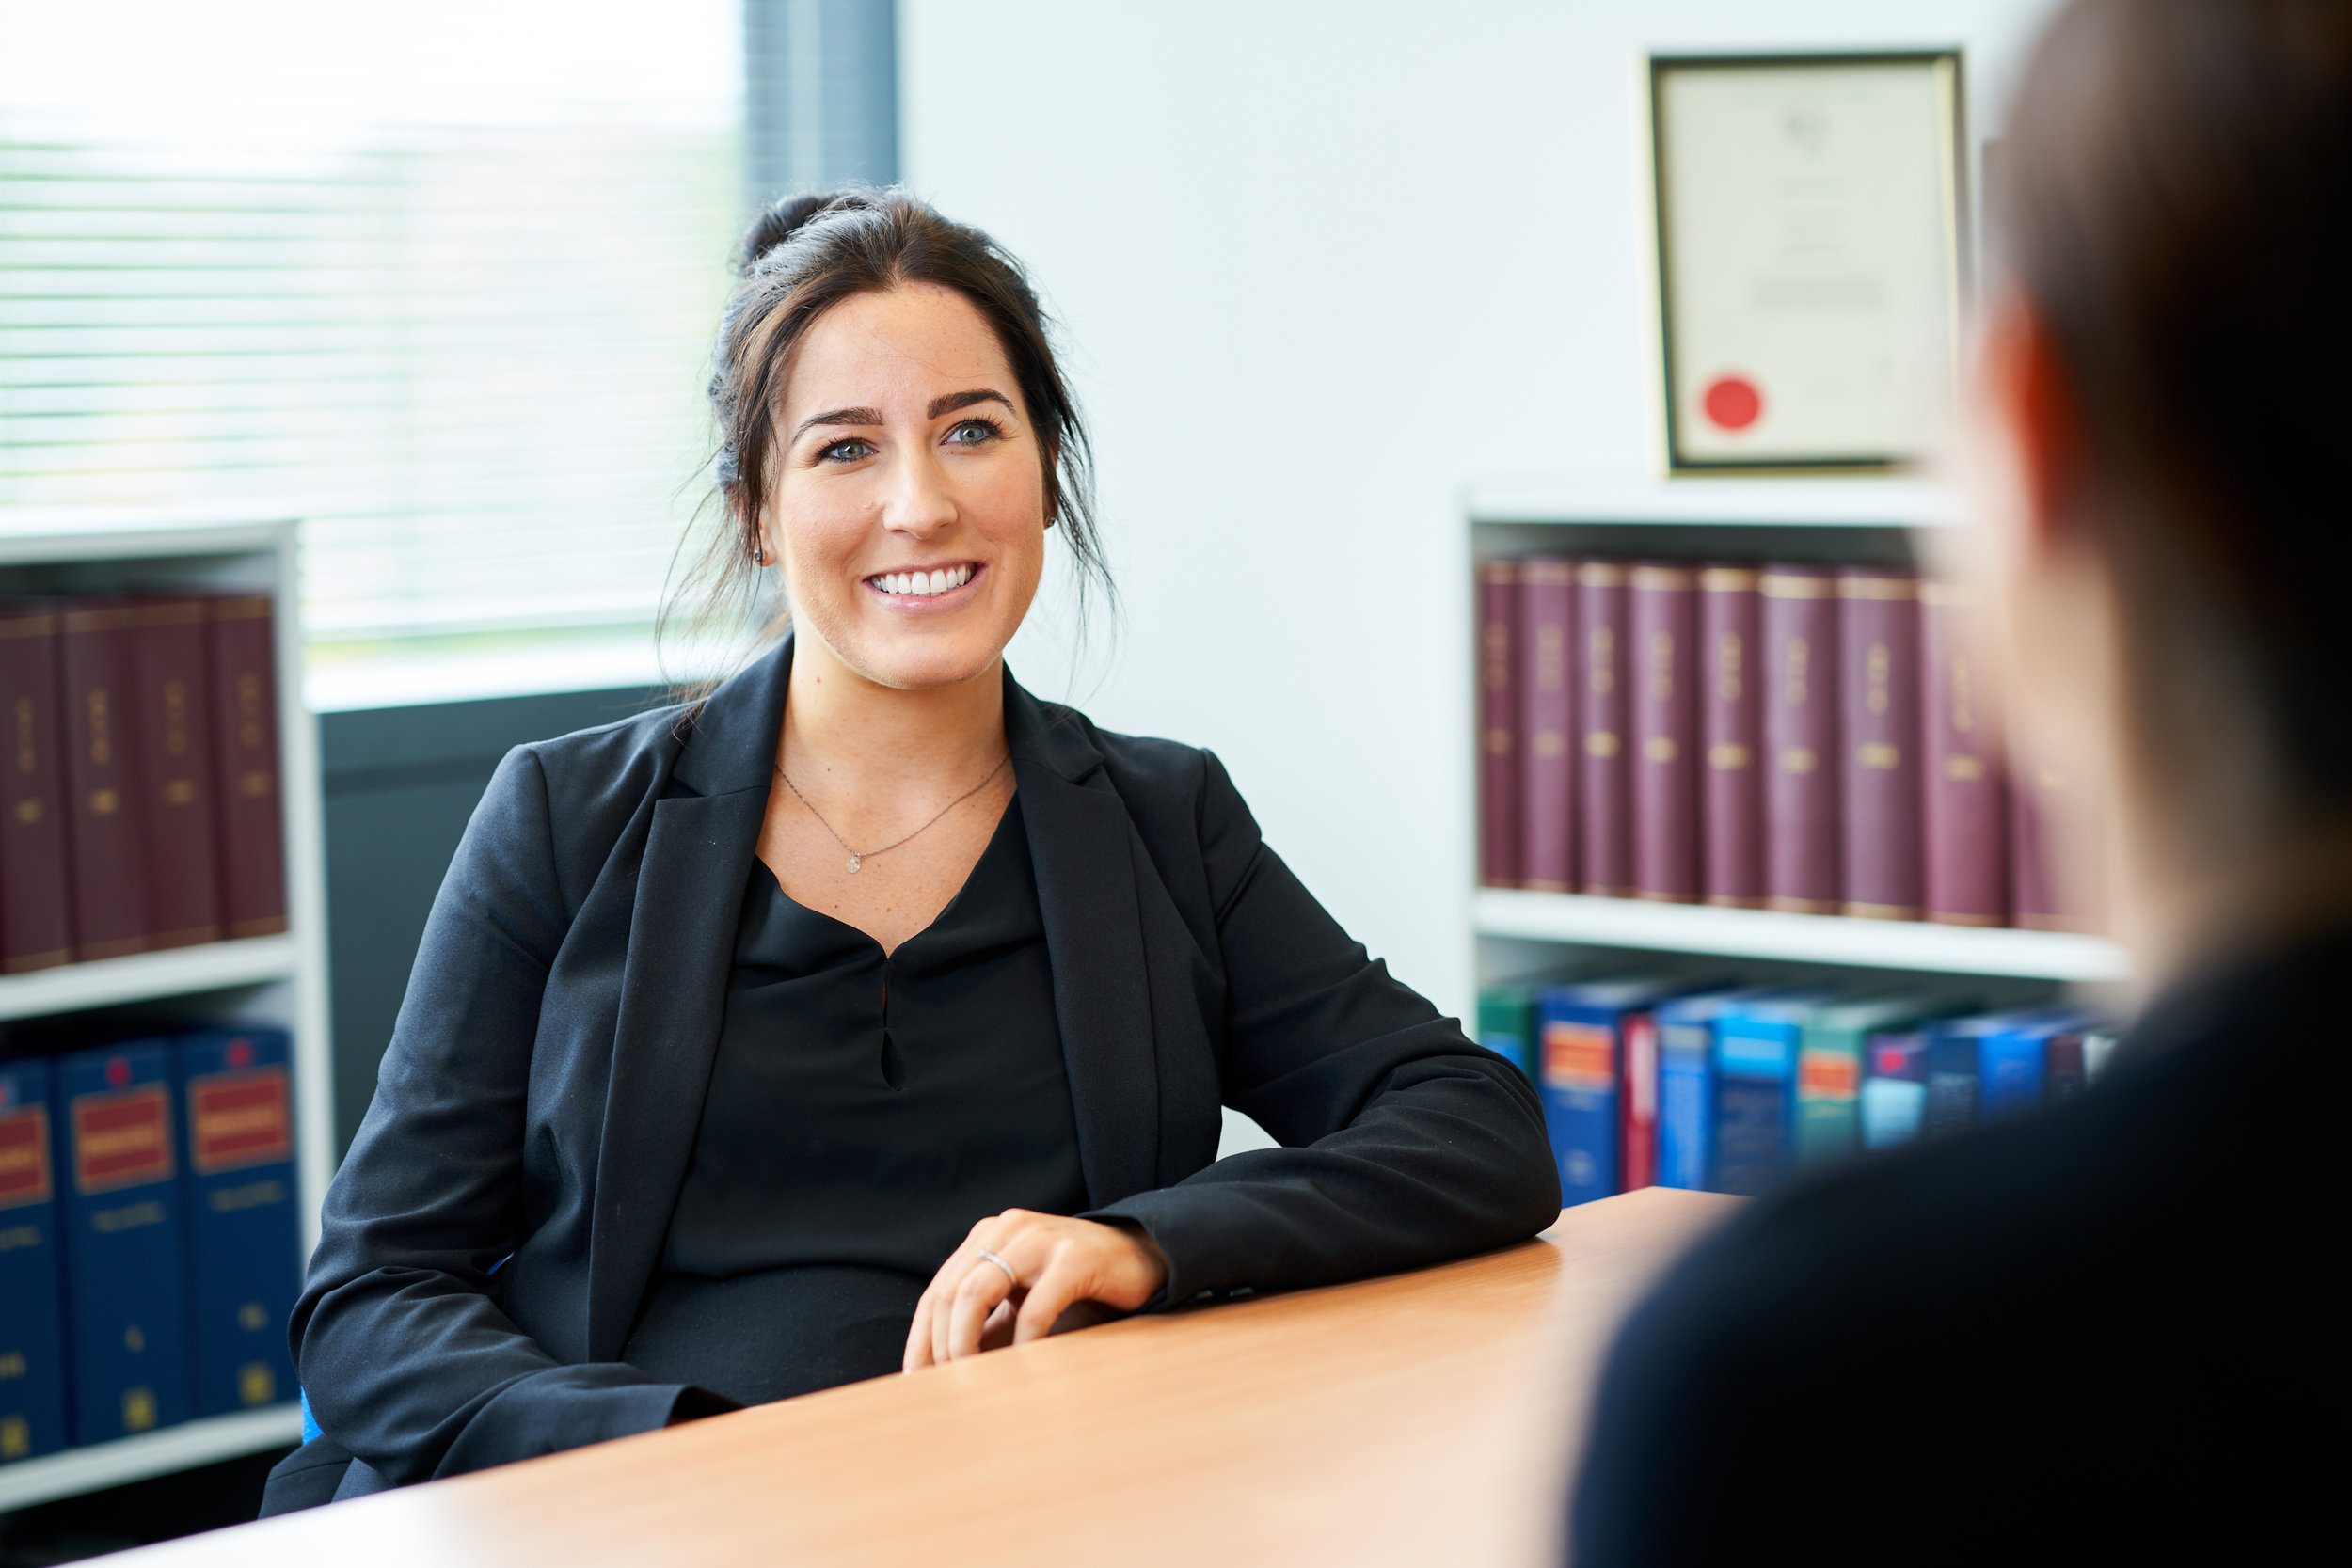 HCR-Solicitors-Partners-Portraits-27-07-17-20-P.jpg